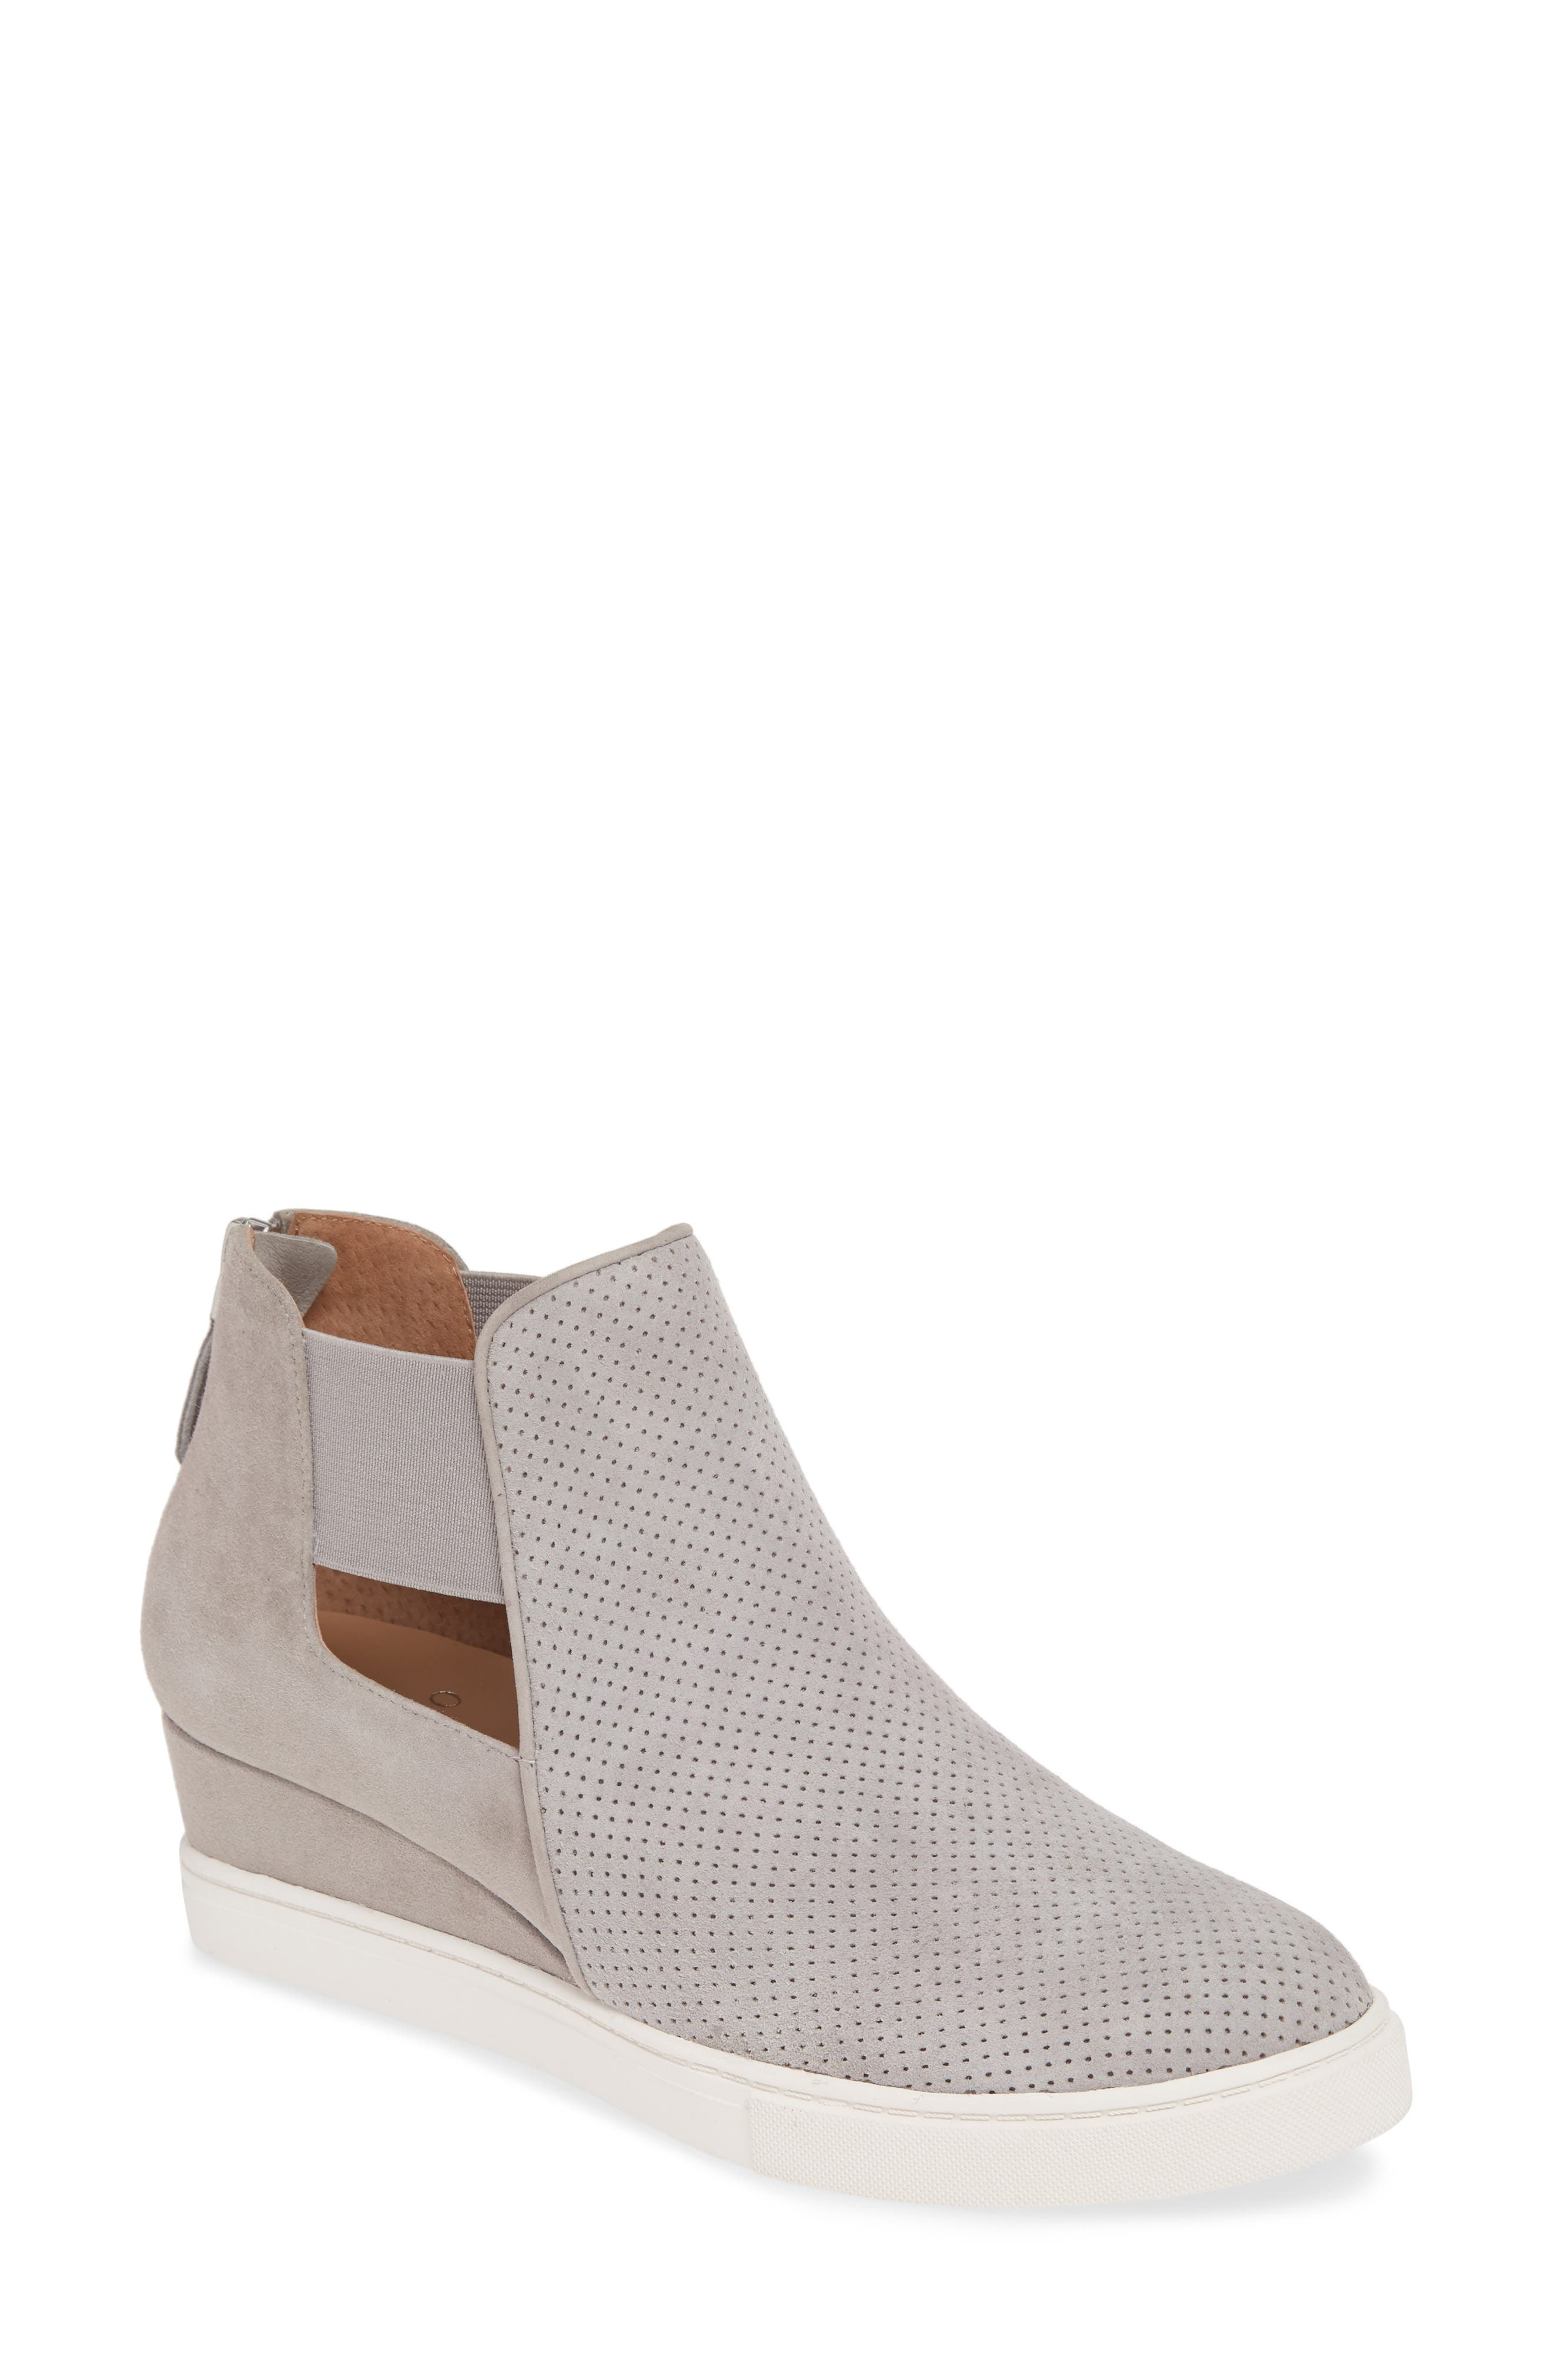 Linea Paolo Amanda Slip-On Wedge Bootie (Women)